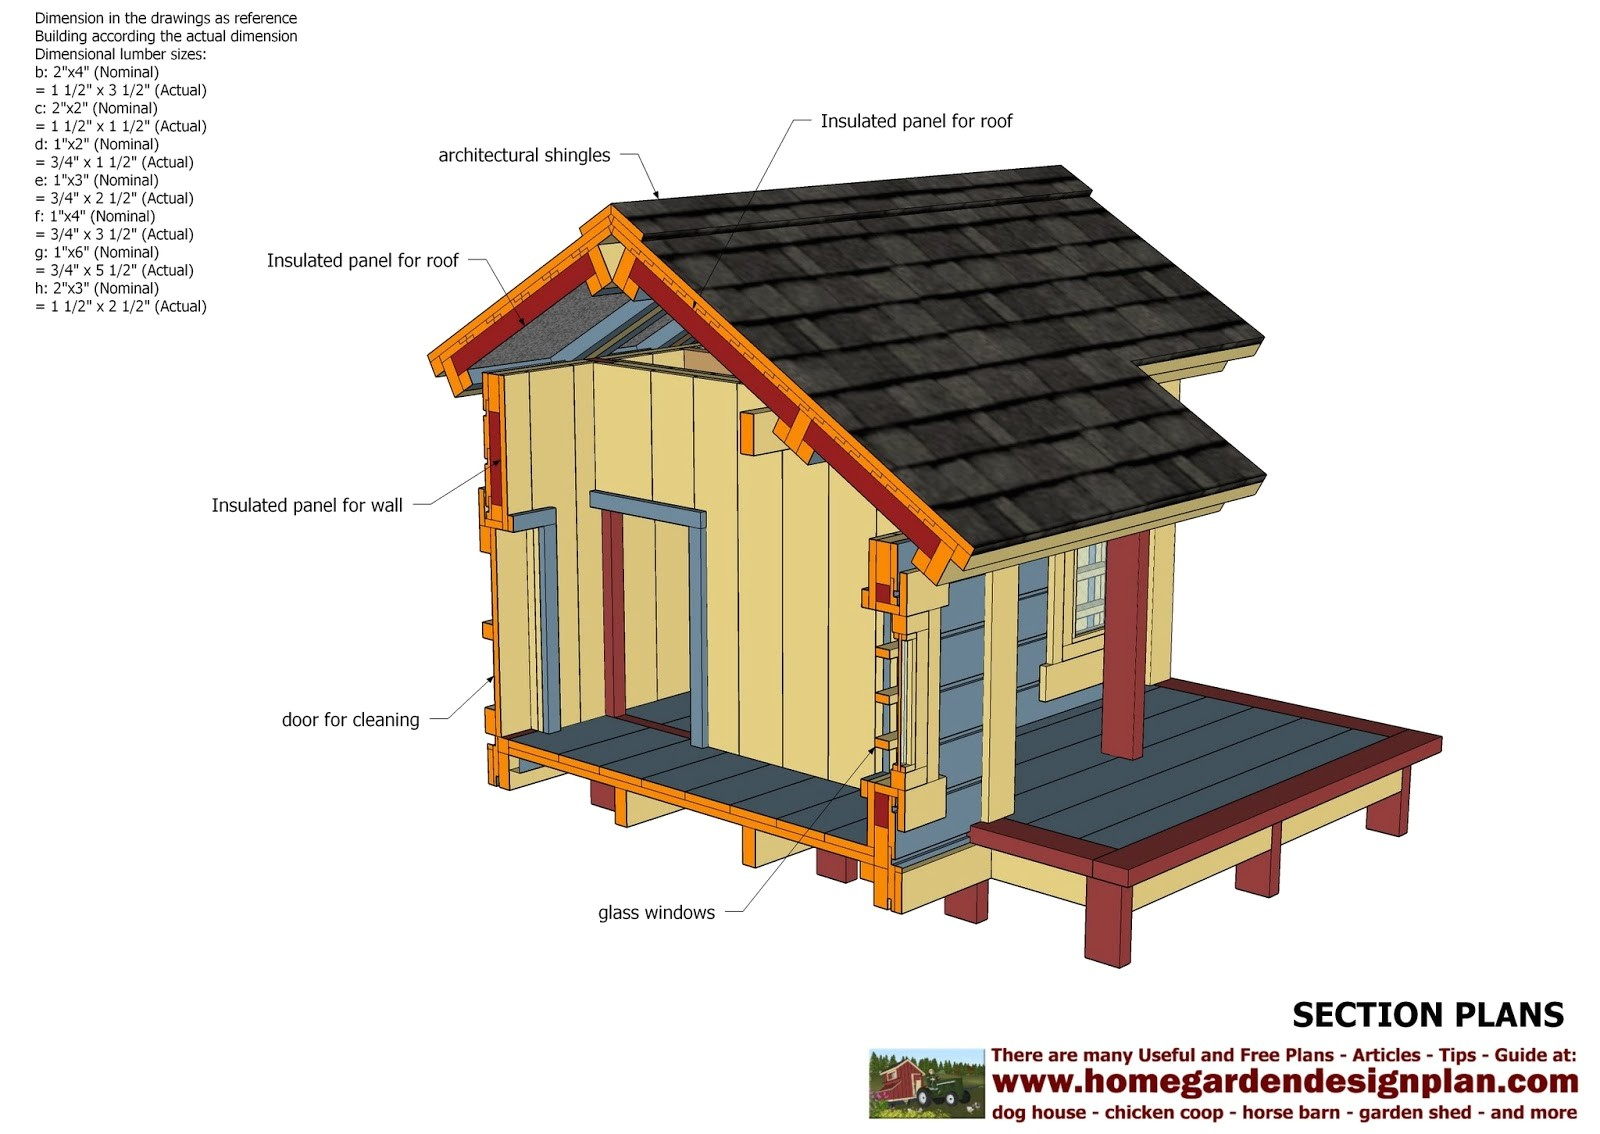 Insulated Heated Dog House Plans Home Garden Plans Dh303 Dog House Plans Dog House